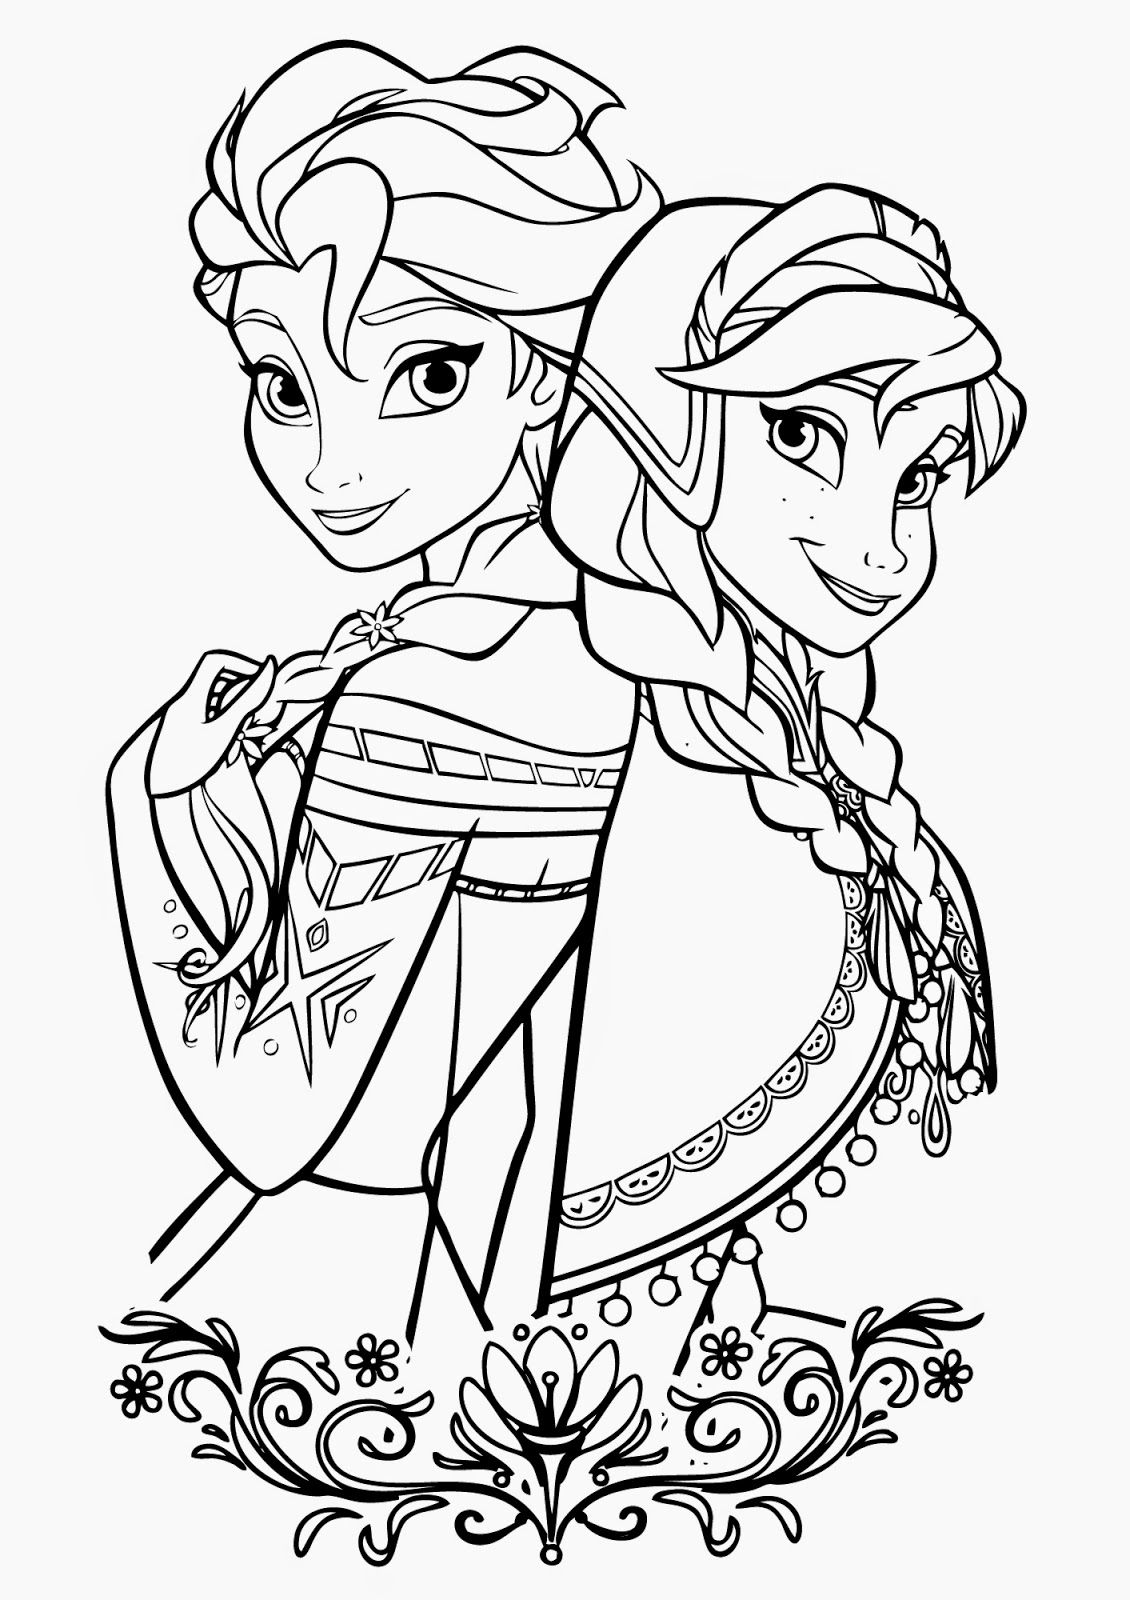 frozen coloring sheets all characters famous characters walt